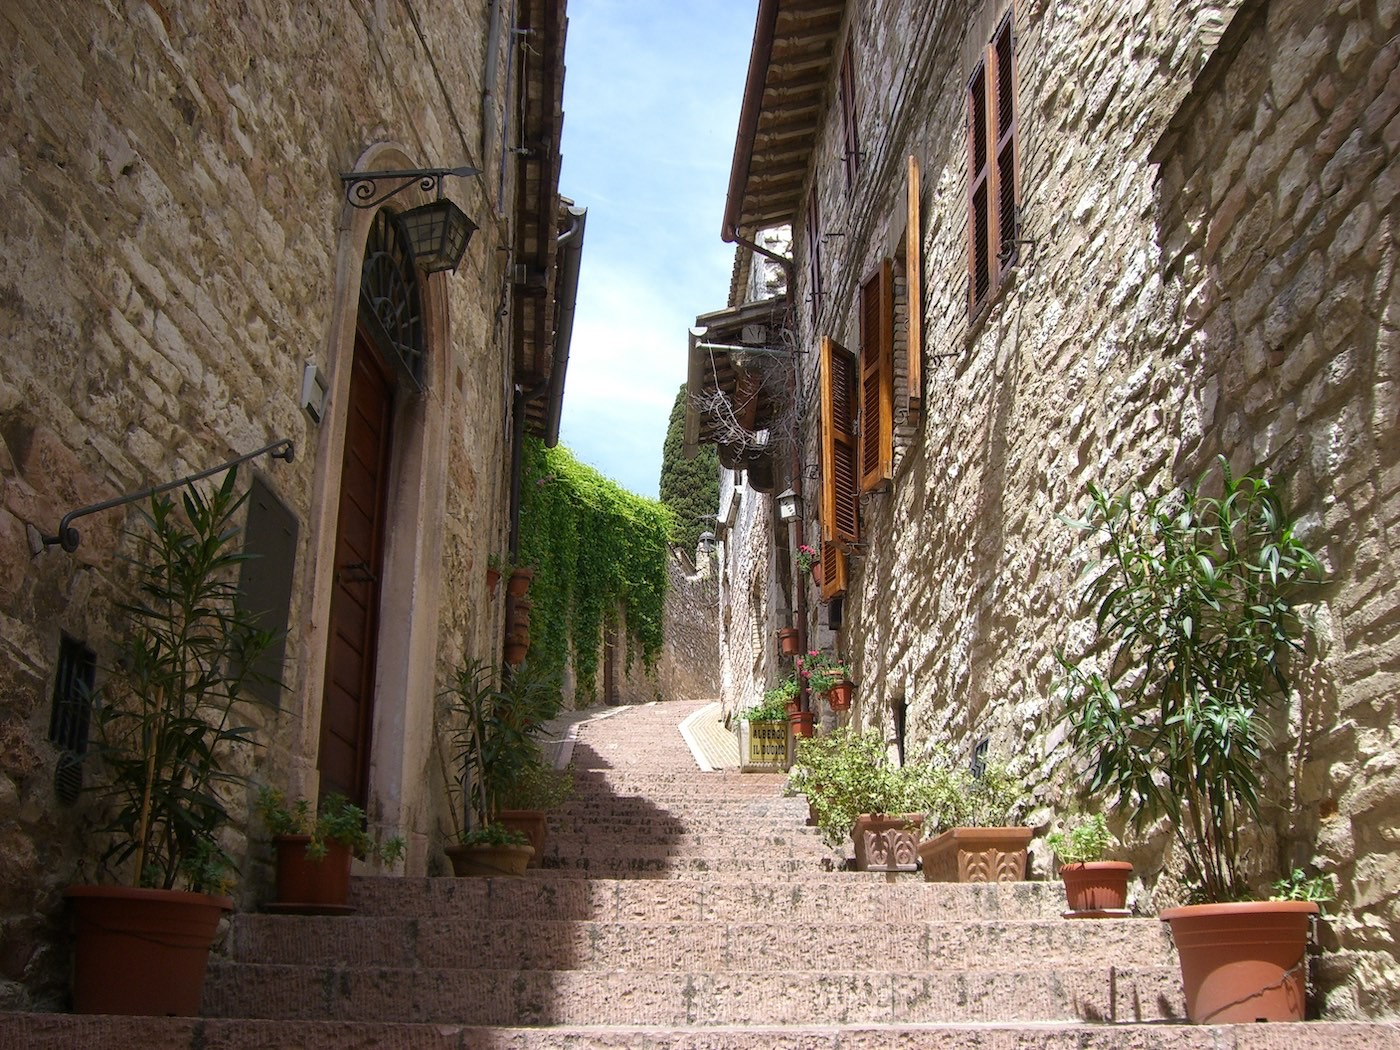 Stairs up a narrow pathway of an Italian village